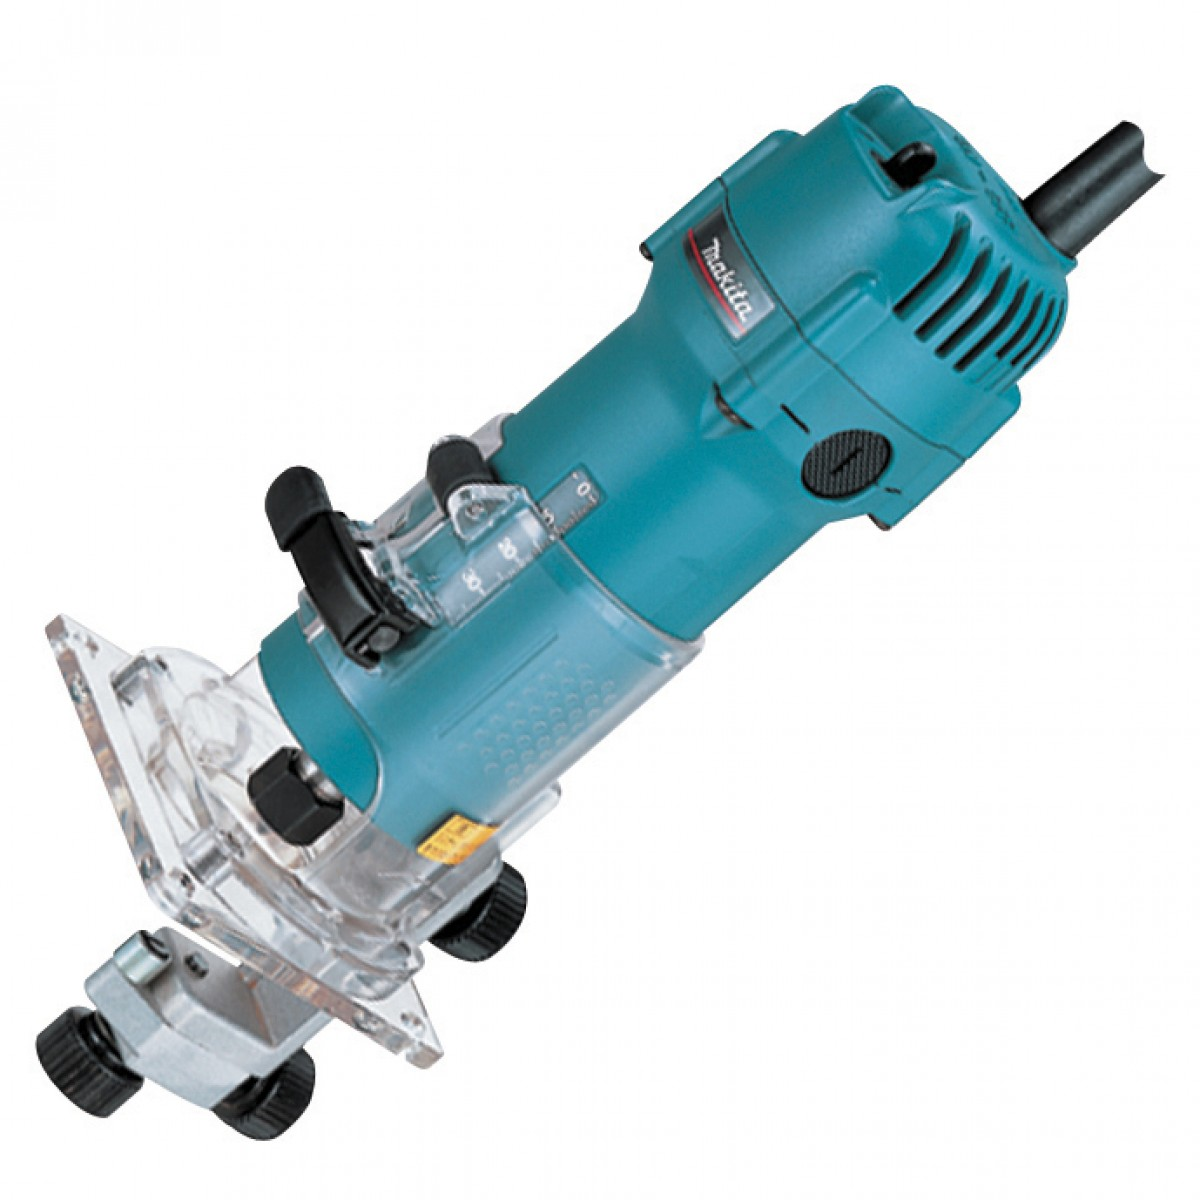 makita 3707f 240v router trimmer 1 4 collet howe tools uk. Black Bedroom Furniture Sets. Home Design Ideas